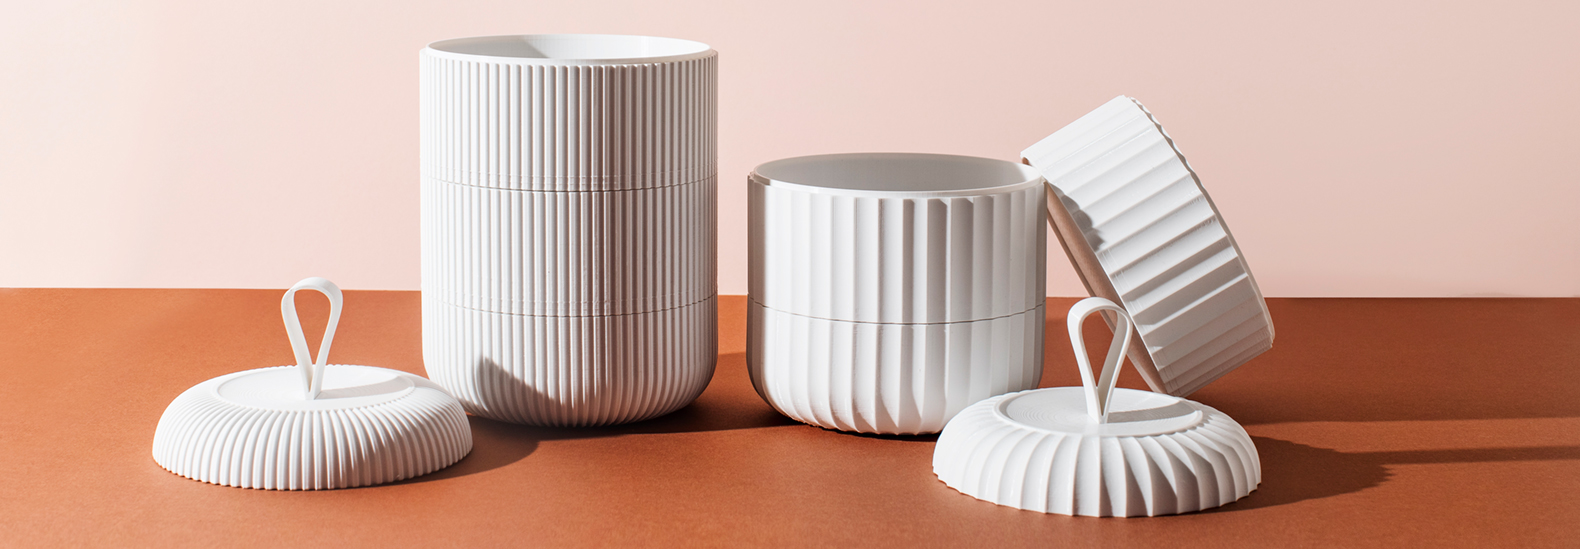 PriestmanGoode designs sustainable, plastic-free takeout containers